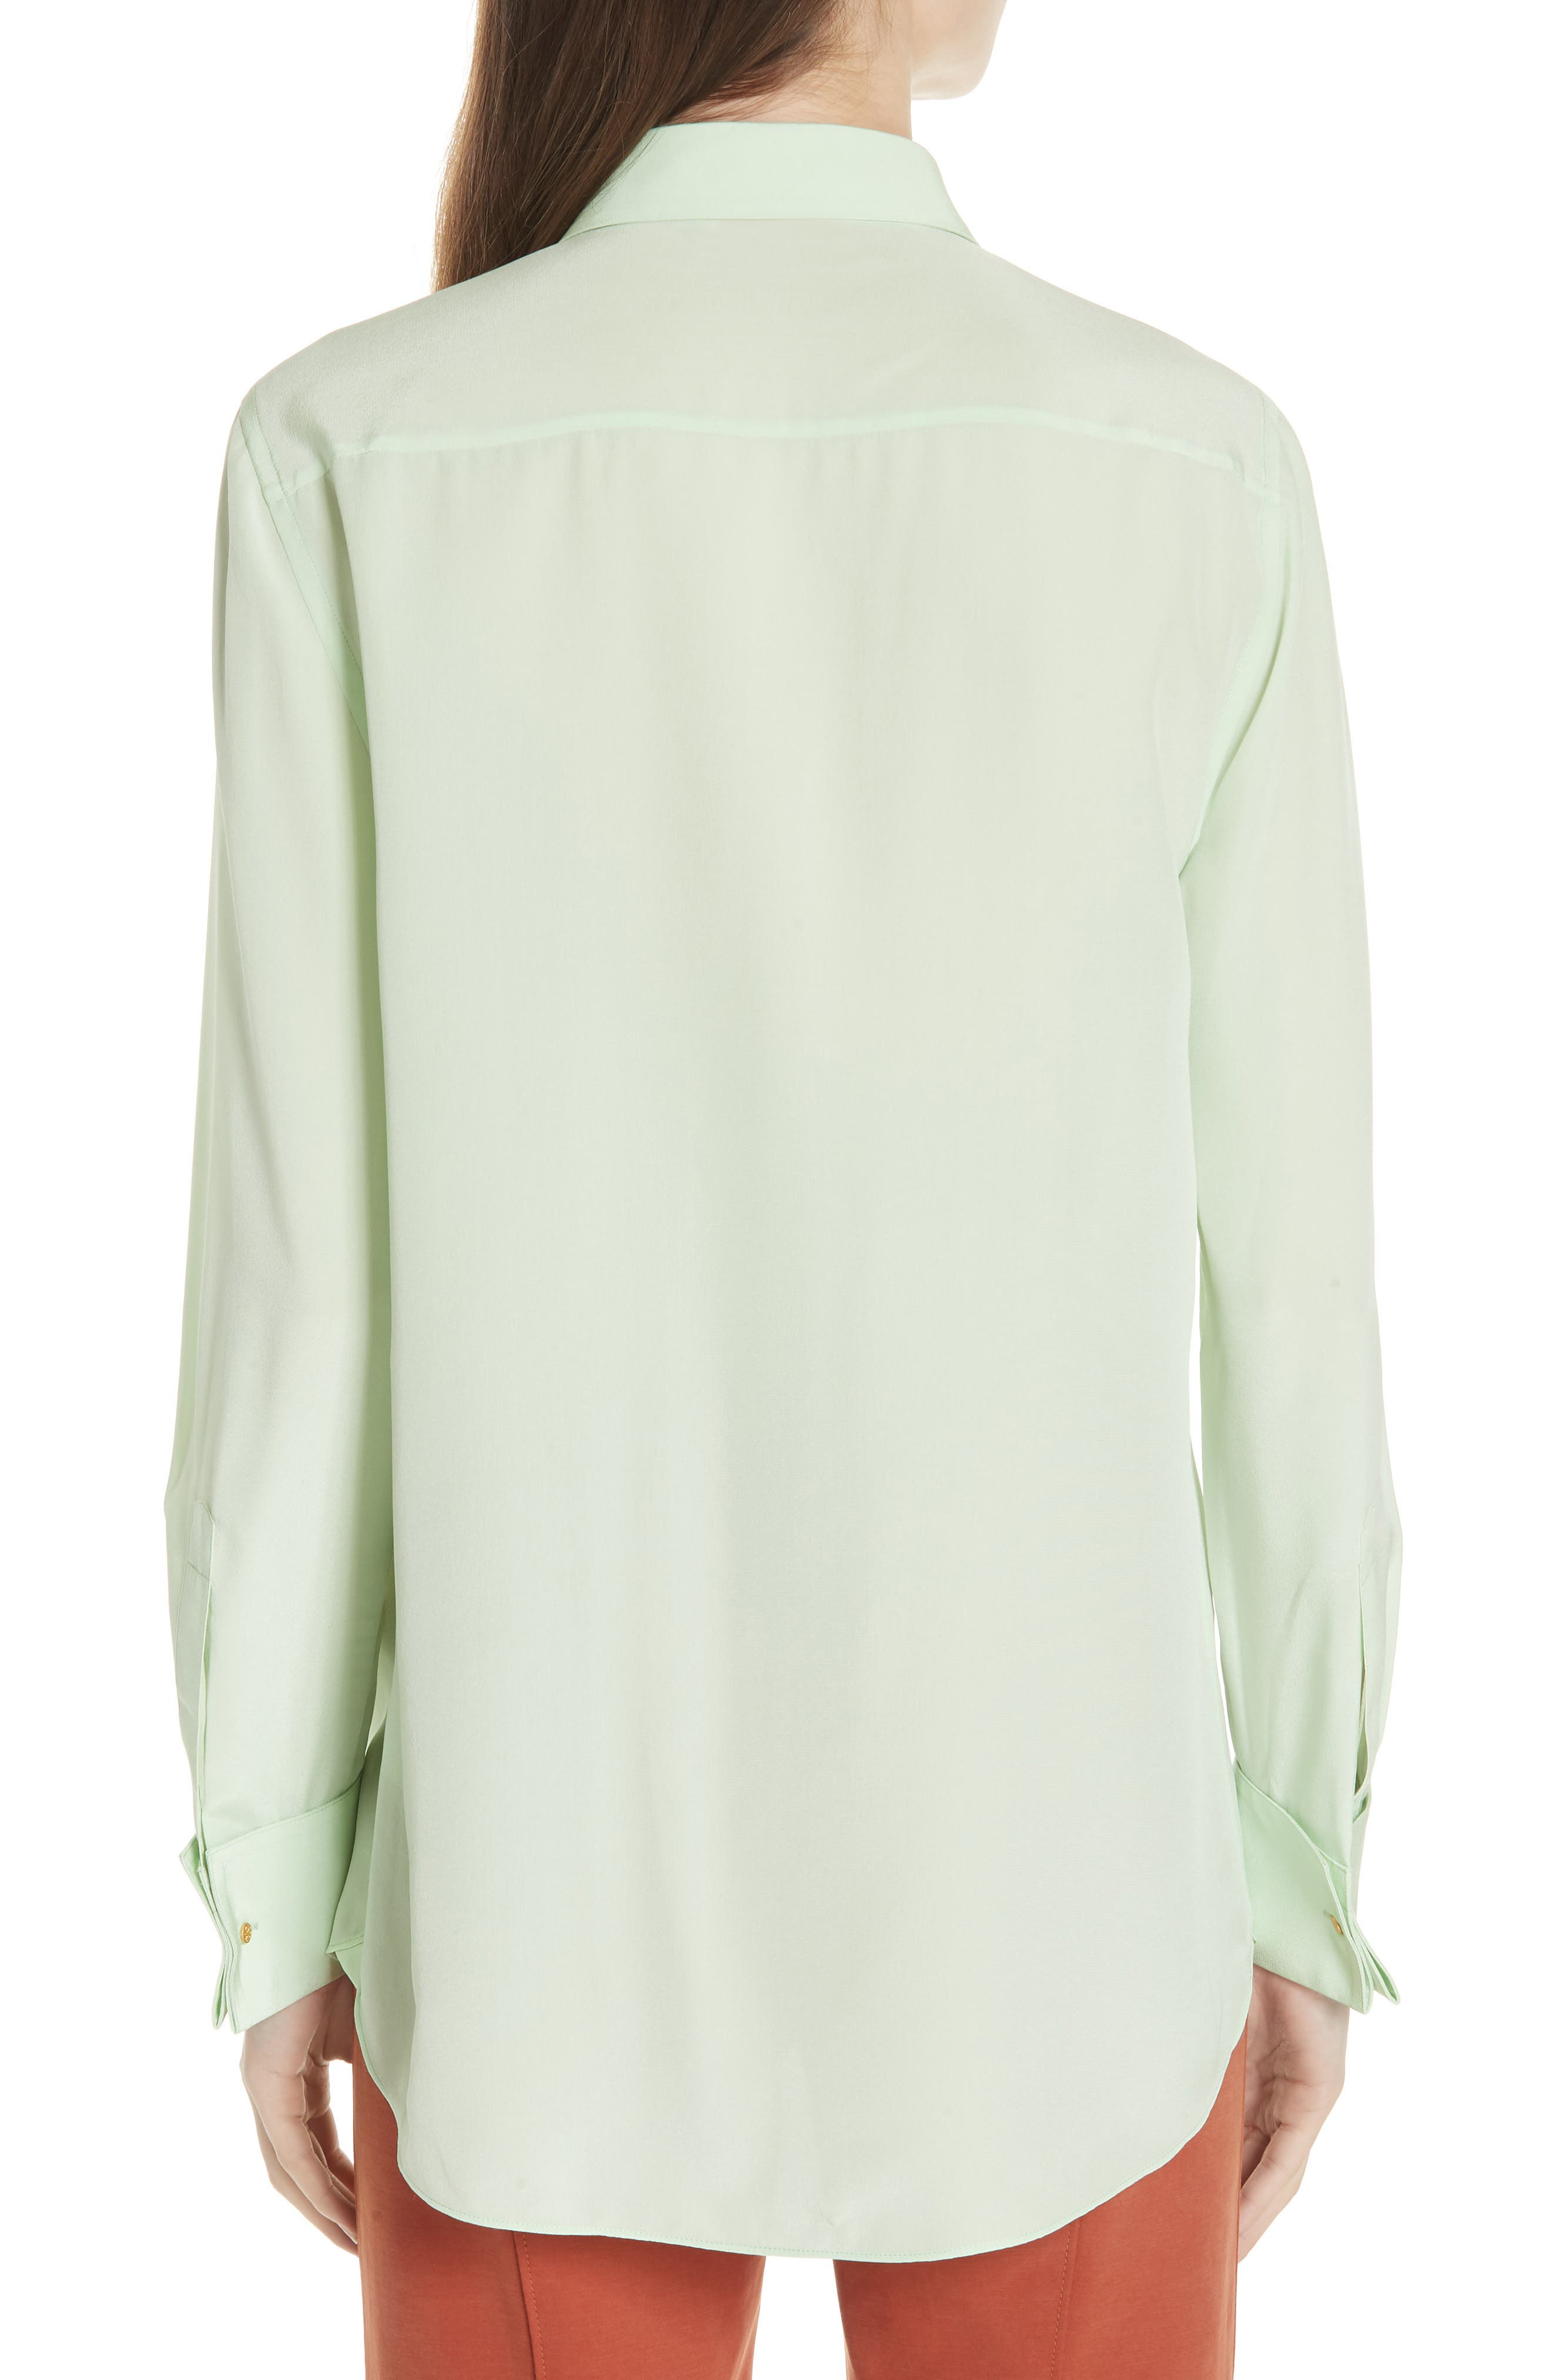 Janet Silk Top,                             Alternate thumbnail 2, color,                             Crushed Mint